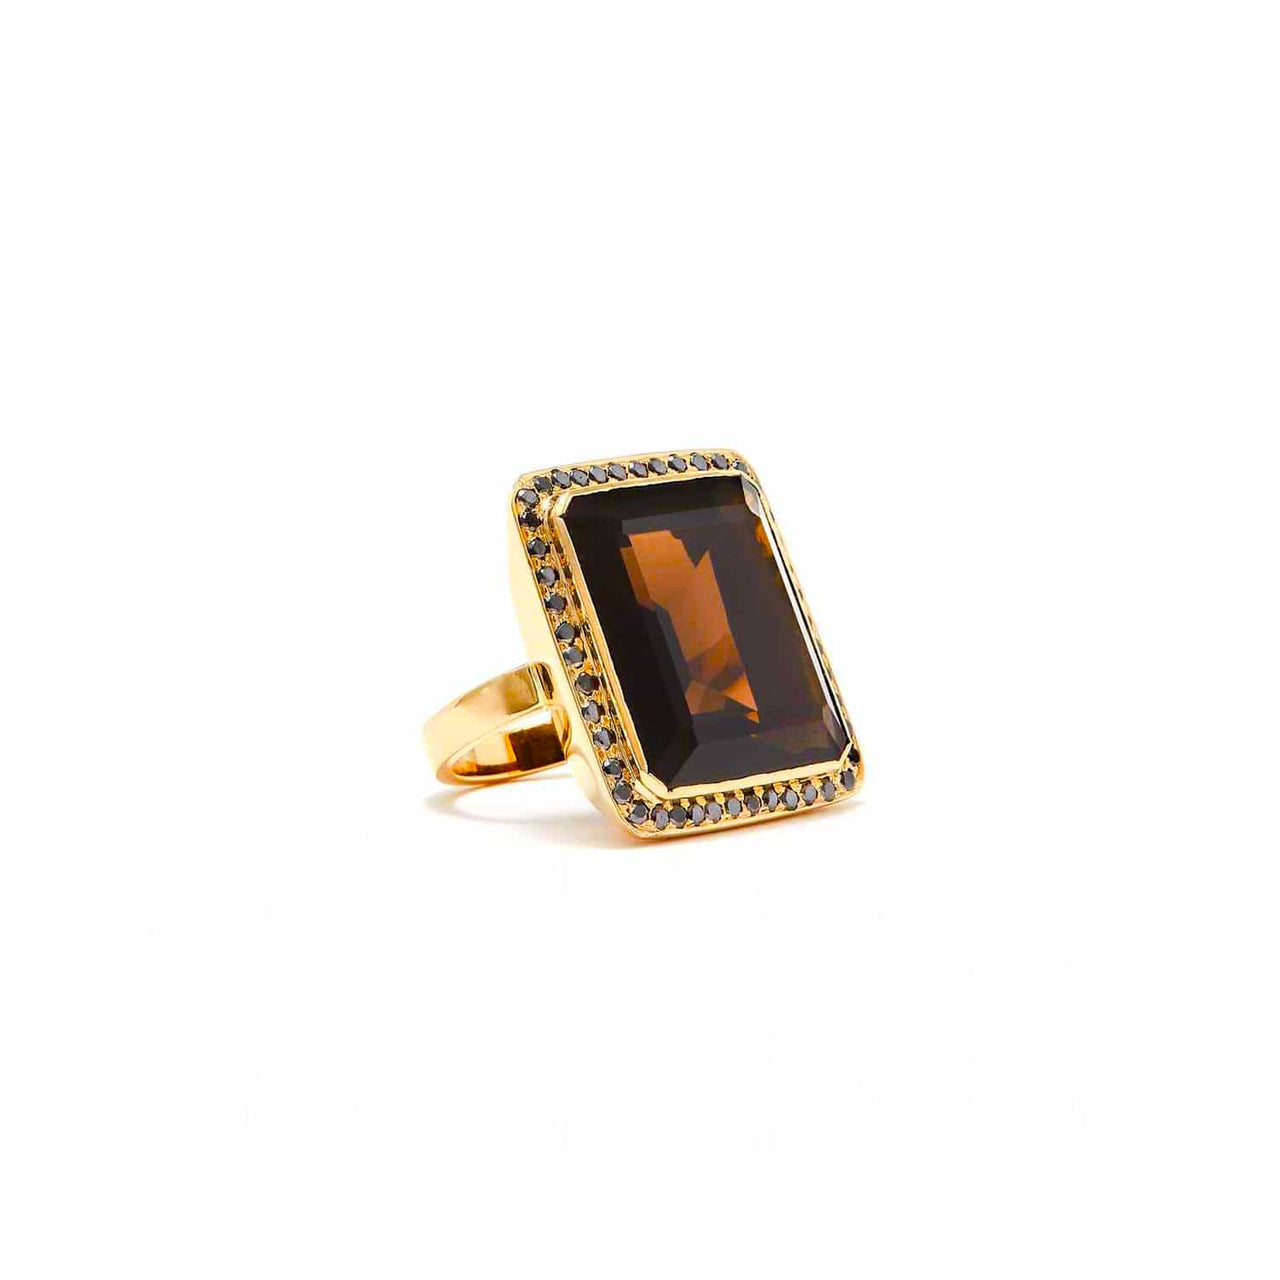 Jaipur Atelier Black Smoke Cocktail Ring